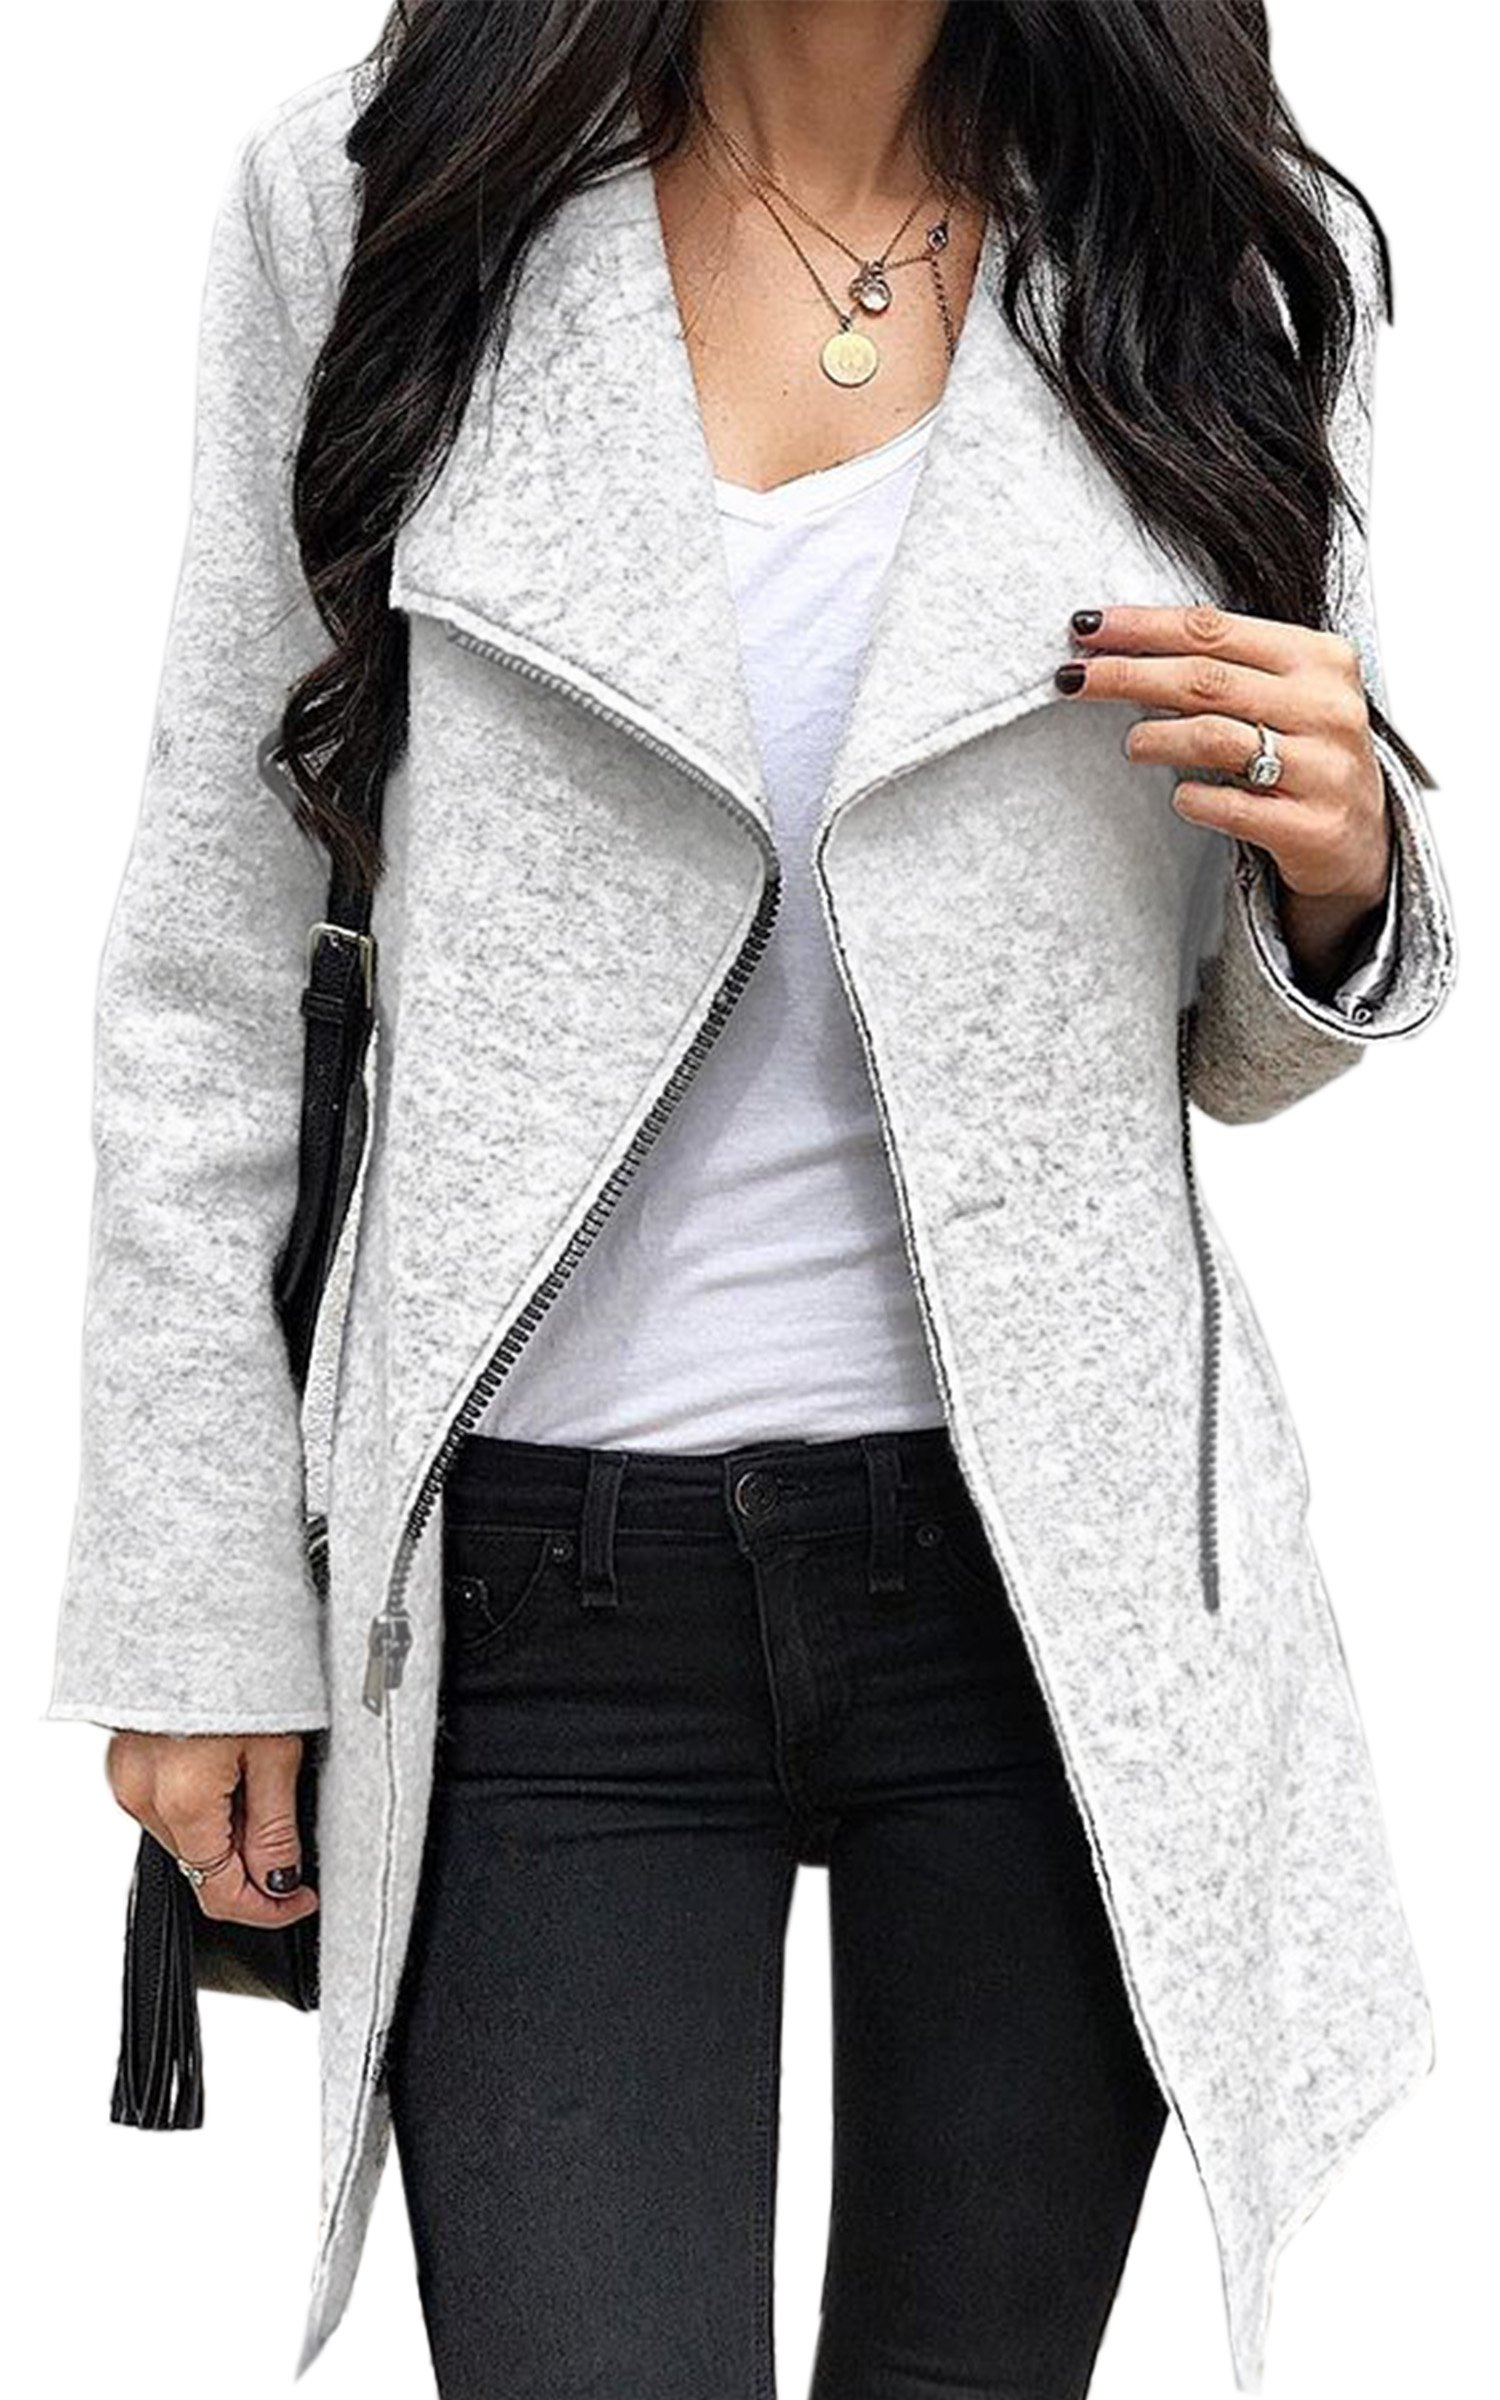 Angashion Women's Irregular Full-Zip Coat Lapel Outwear Casual Overcoats Long Sleeves Tops Grey L